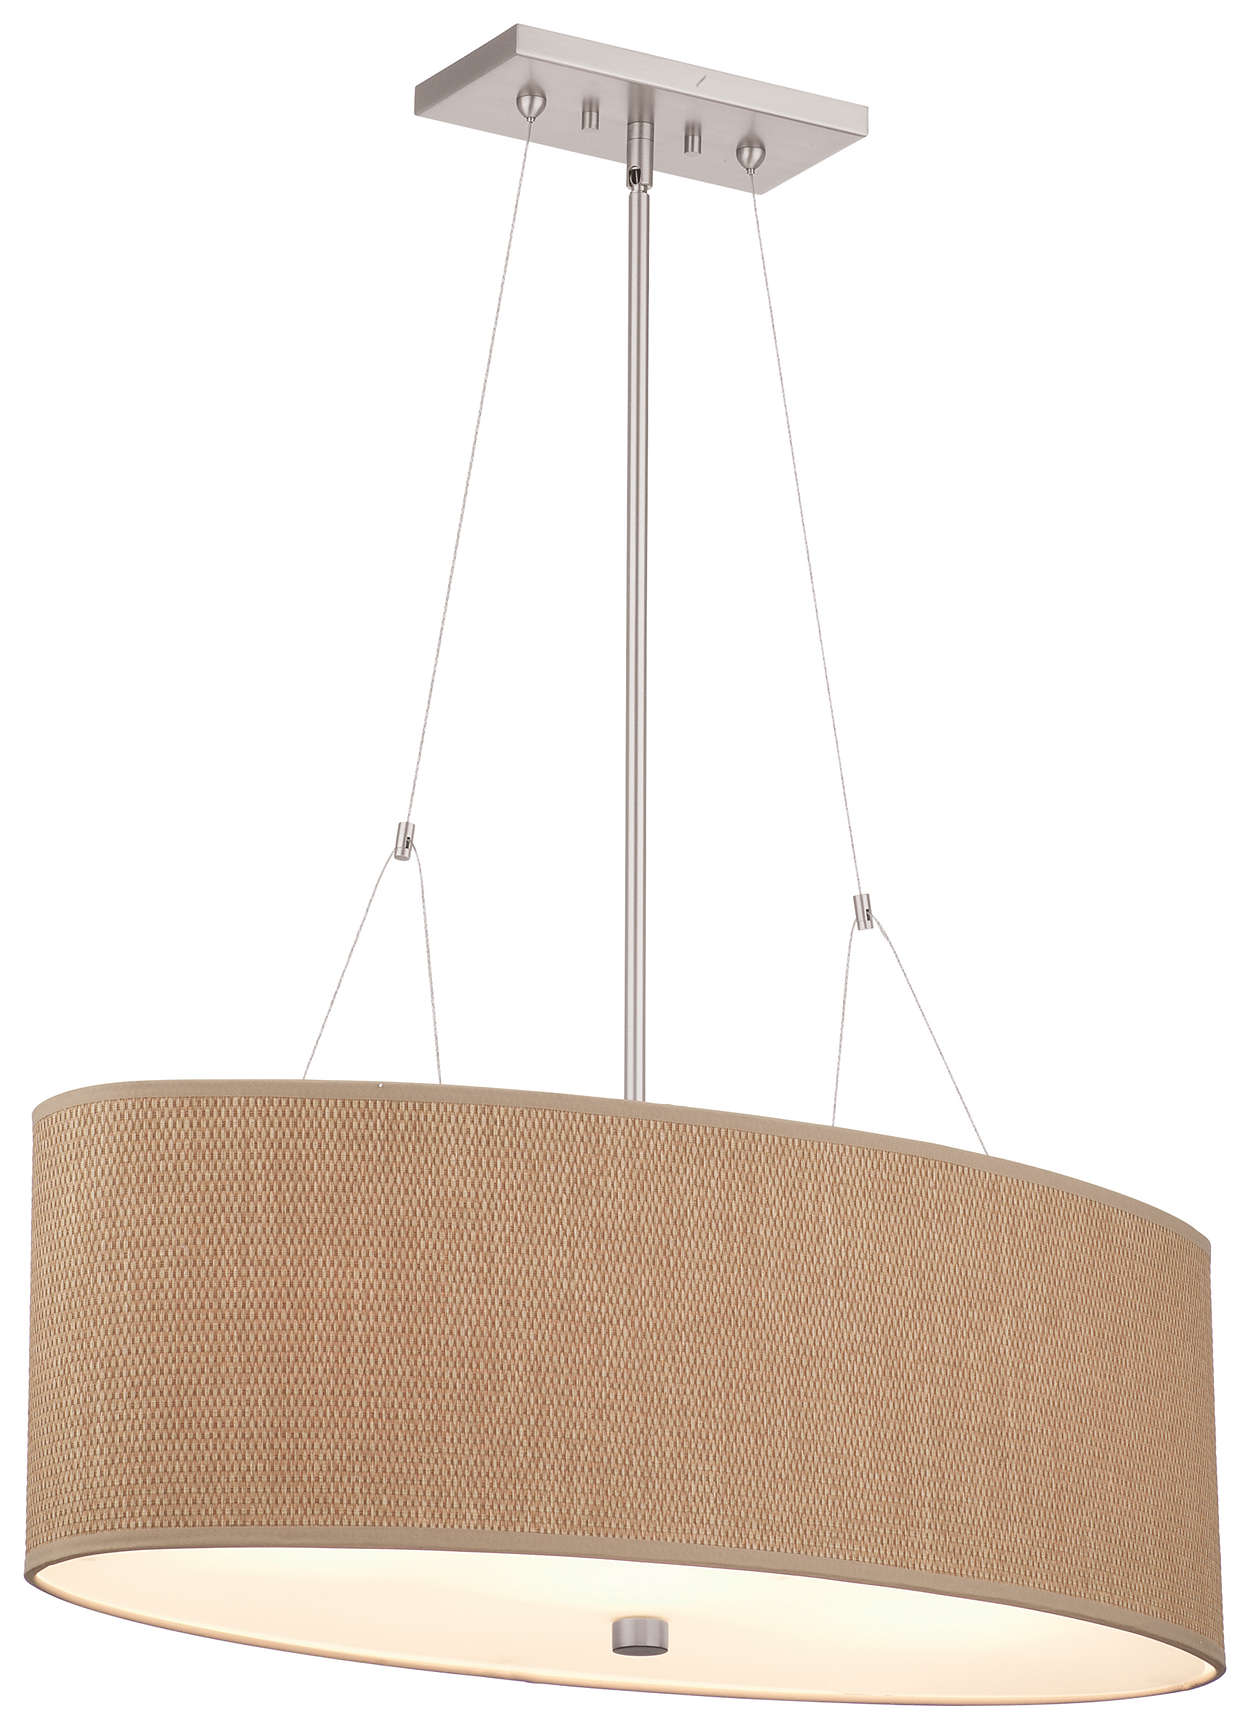 Alexis 3-light Pendant in Satin Nickel finish